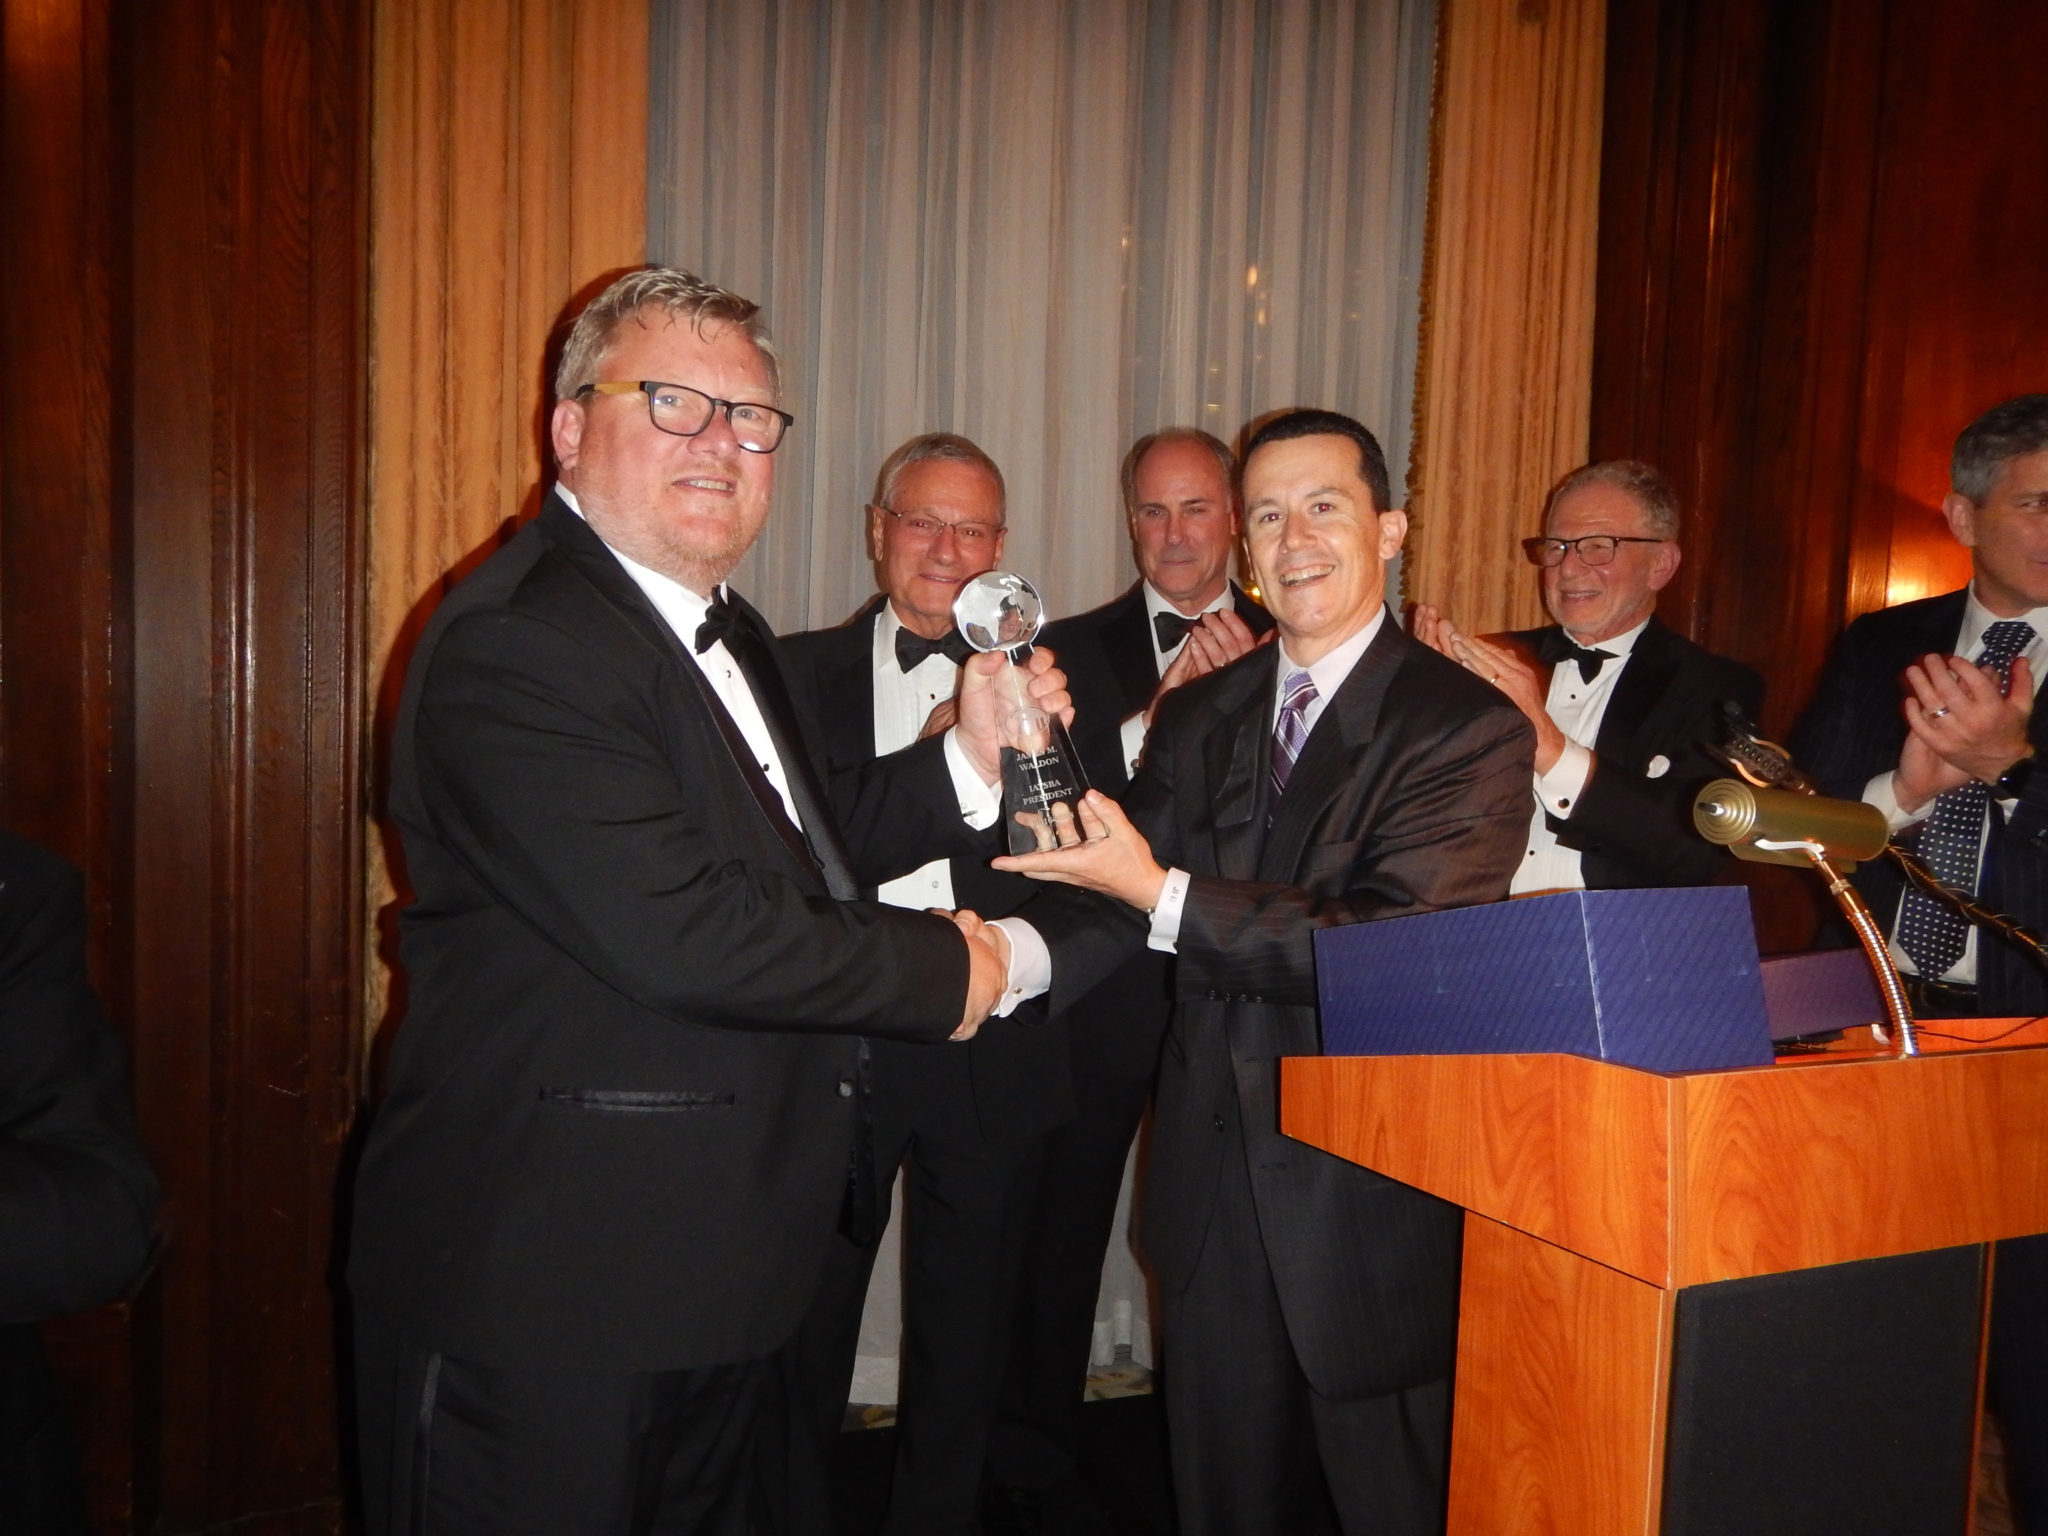 EVP Jim Rodriguez presents President Jim Waldon with his award Photo by Robert L. Feldman